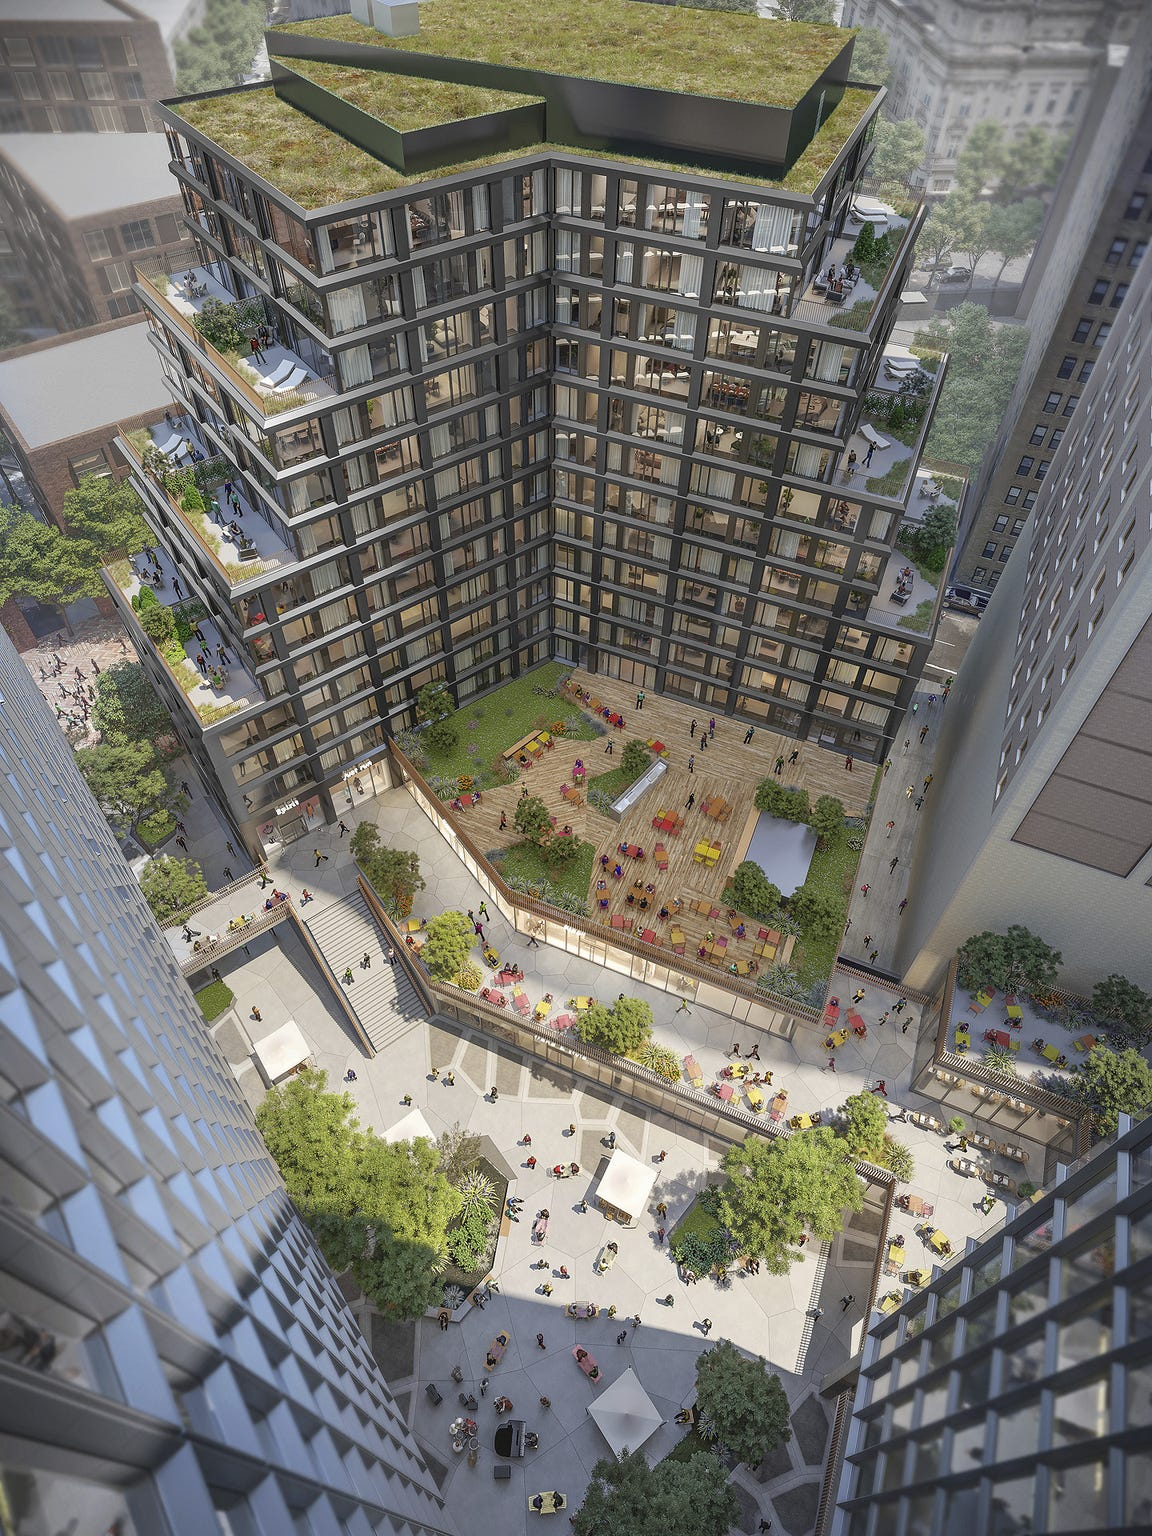 Plans for the $830 million Monroe Blocks project in downtown Detroit, seen in a courtyard view in this rendering, include more than an acre of open space.